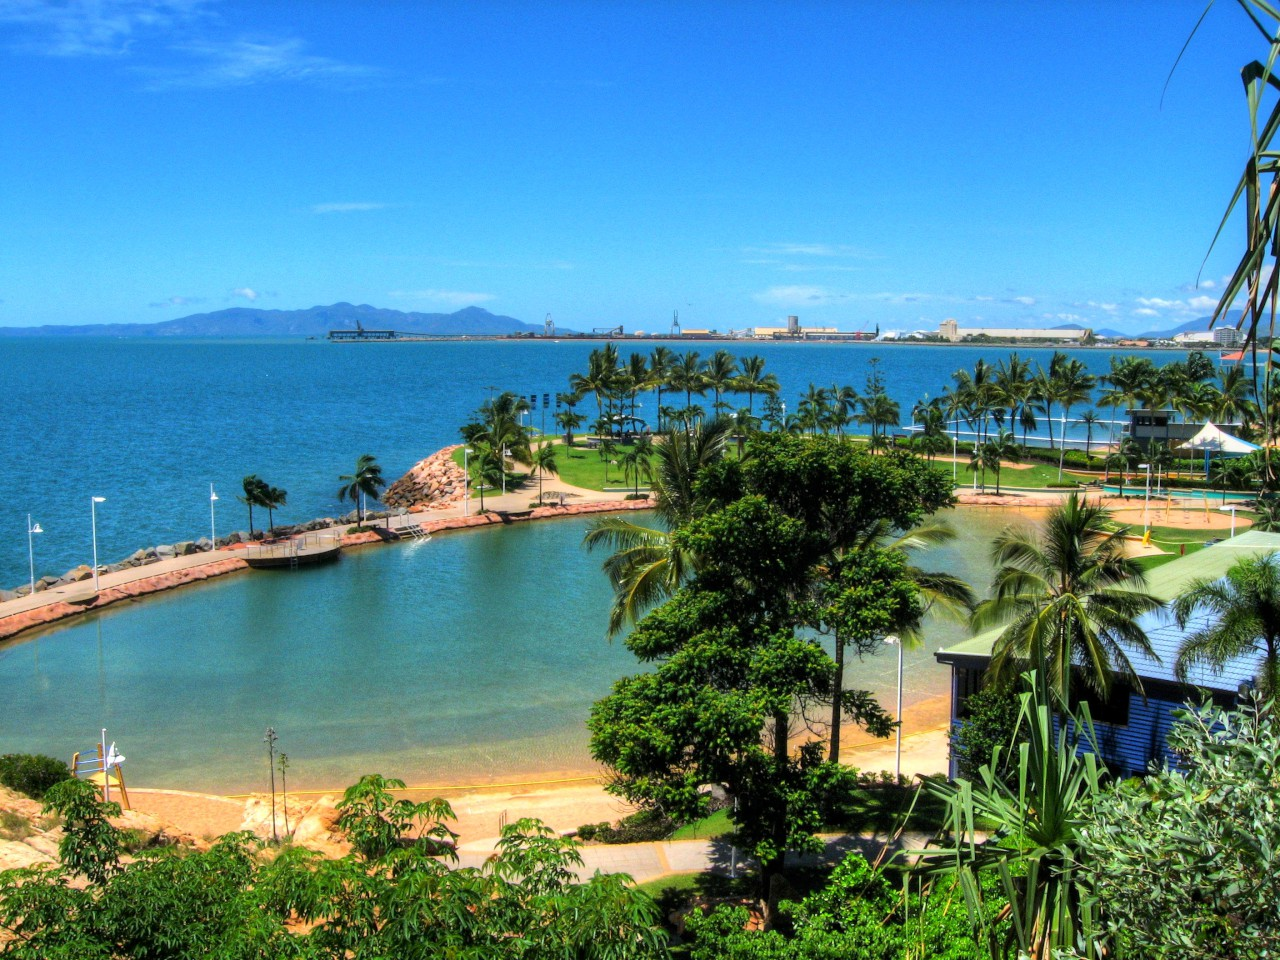 Townsville Image 4